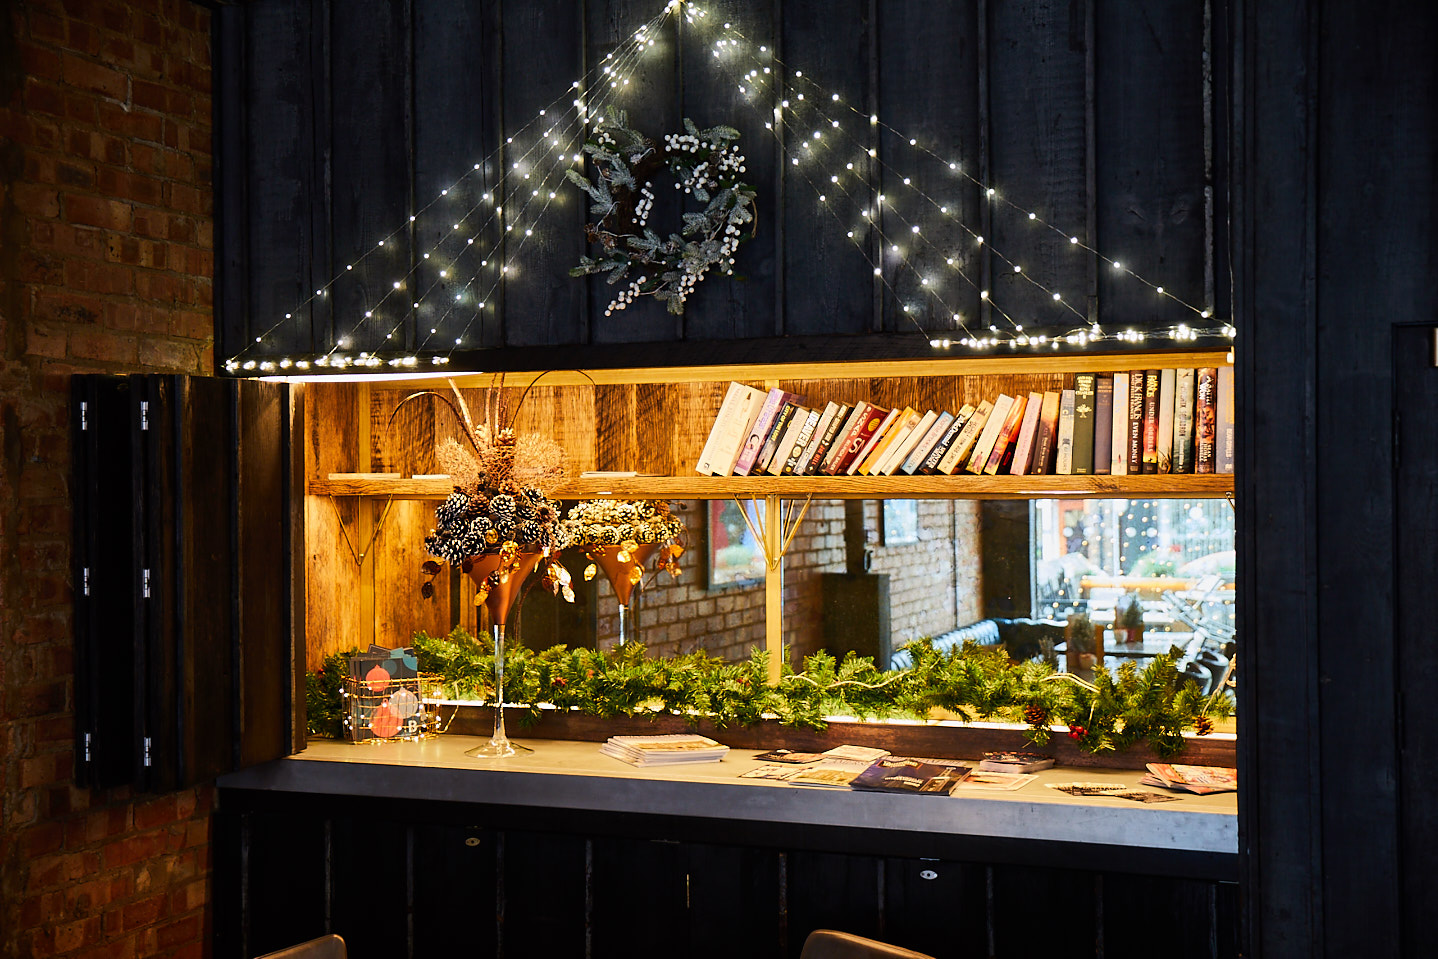 Dark blue pained cladding surrounds feature cabinet with cocktail glass and books